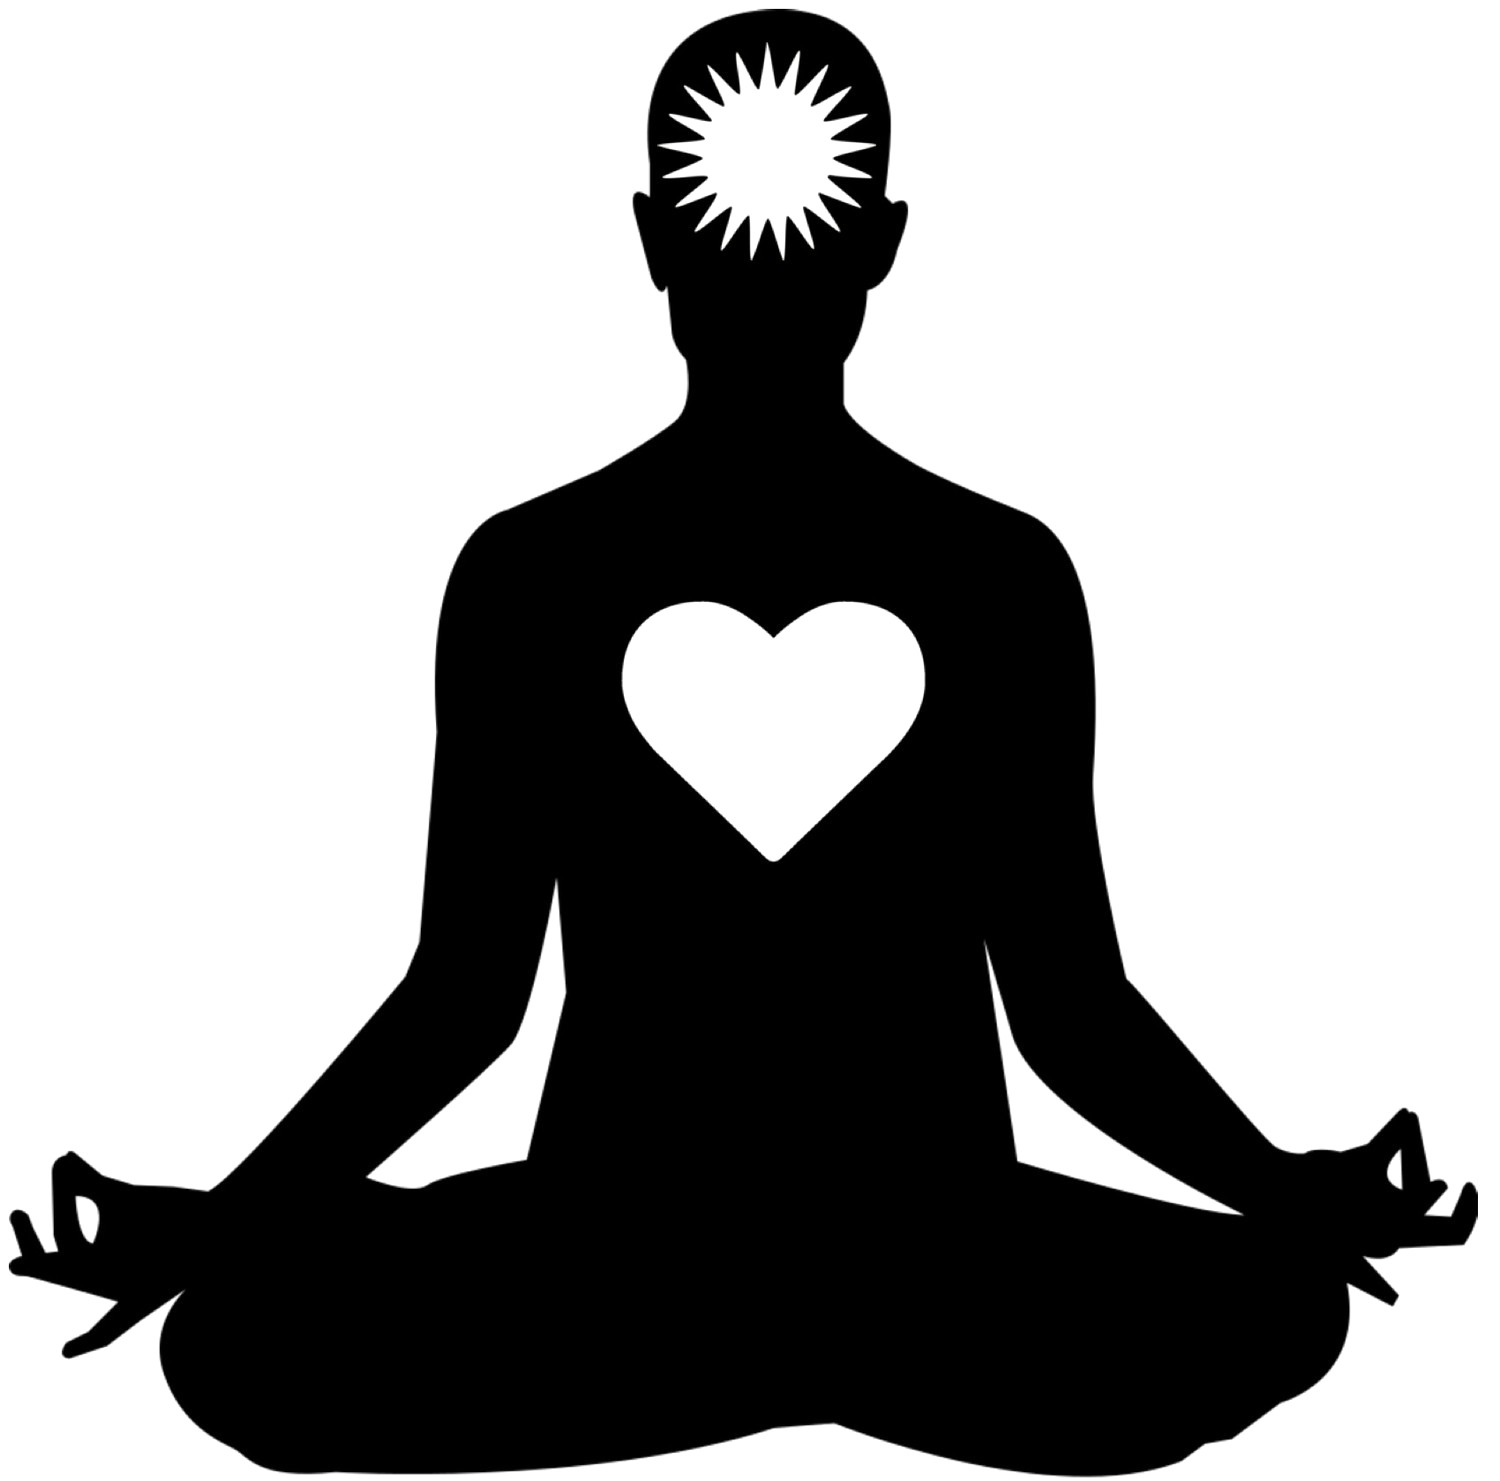 Yoga clipart svg black and white library yoga-clipart-4-h-meditation-health-and-wellness-10-7-15 - Bombay ... svg black and white library